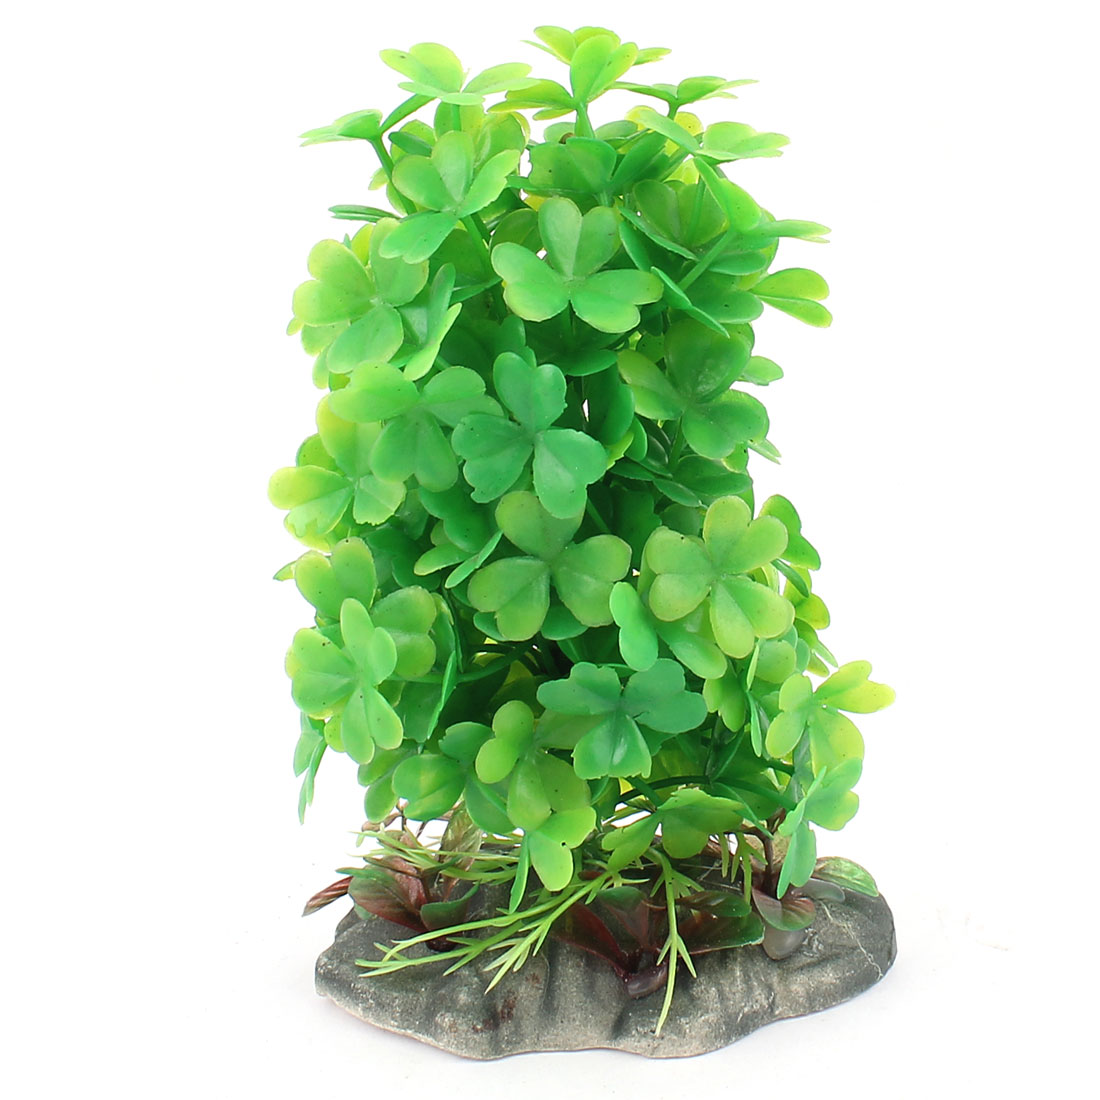 Plastic Leaf Clover Accent Aquatic Plant Fish Tank Aquarium Decor Green